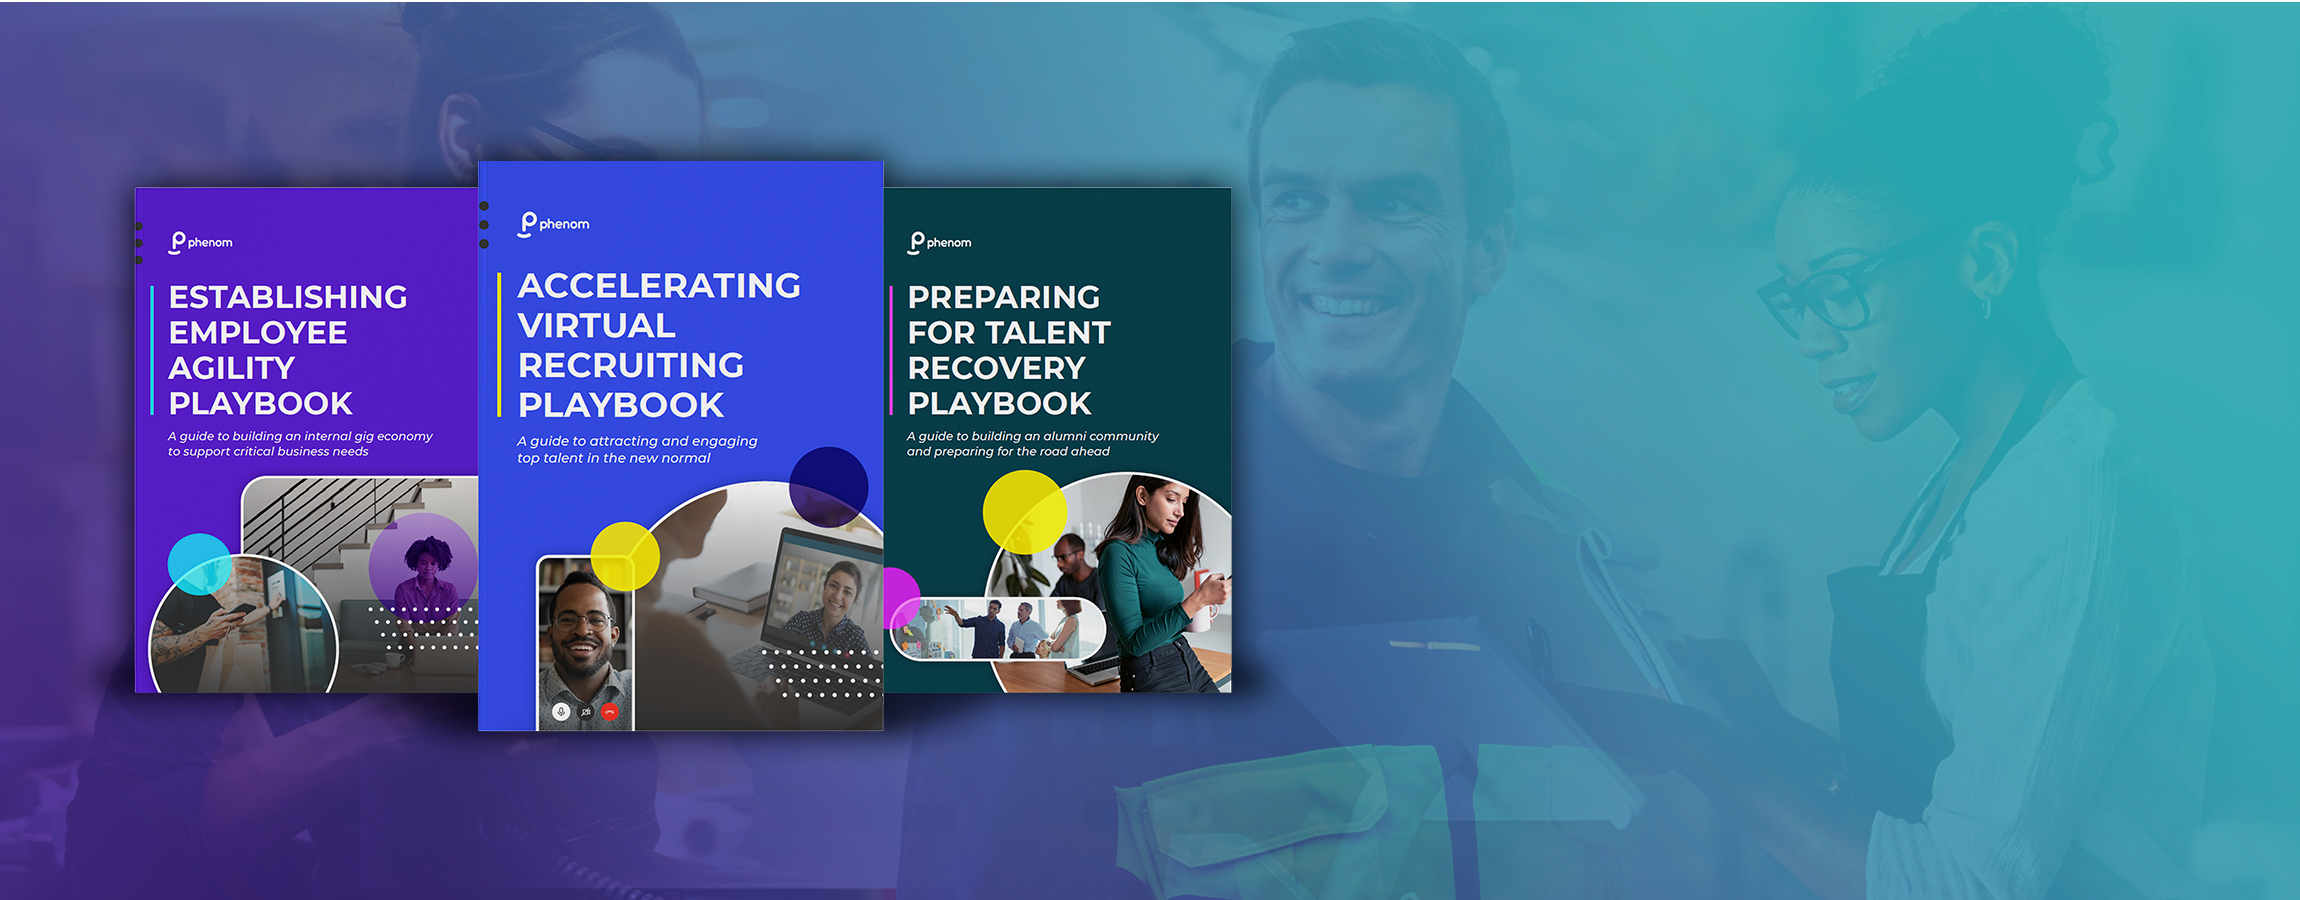 Playbook covers